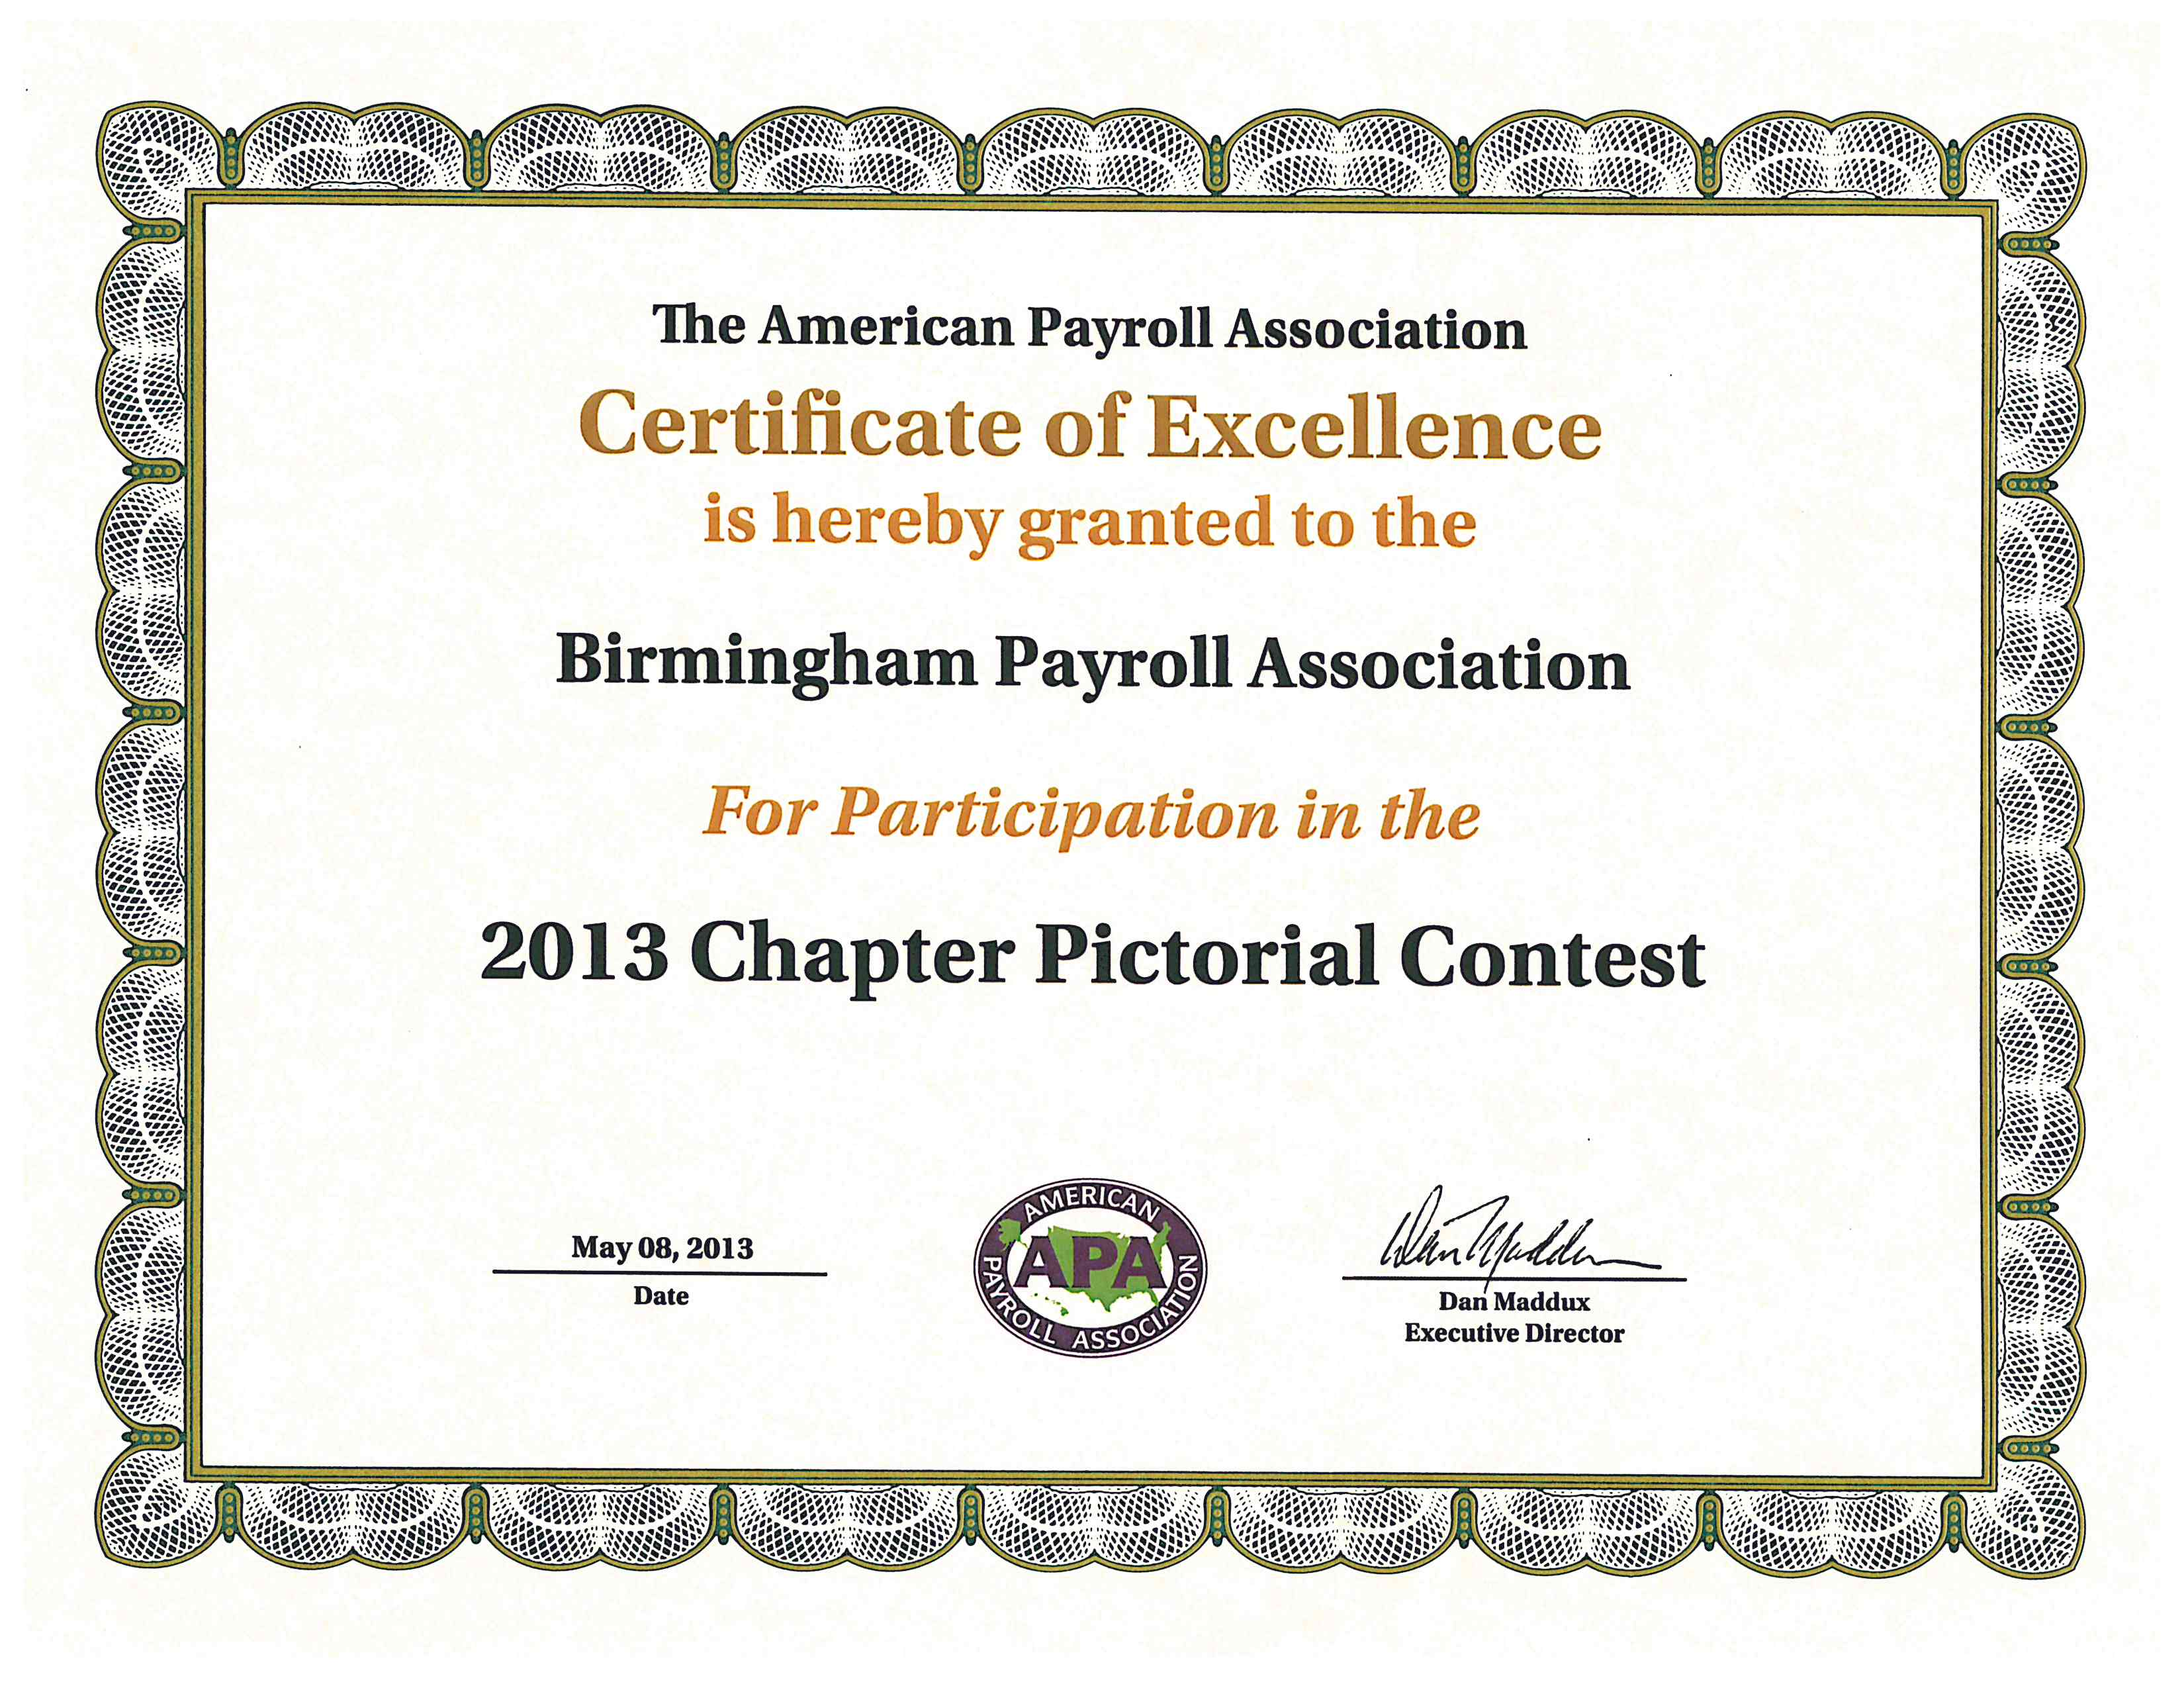 2013 apa chapter pictorial contest certificate of excellence